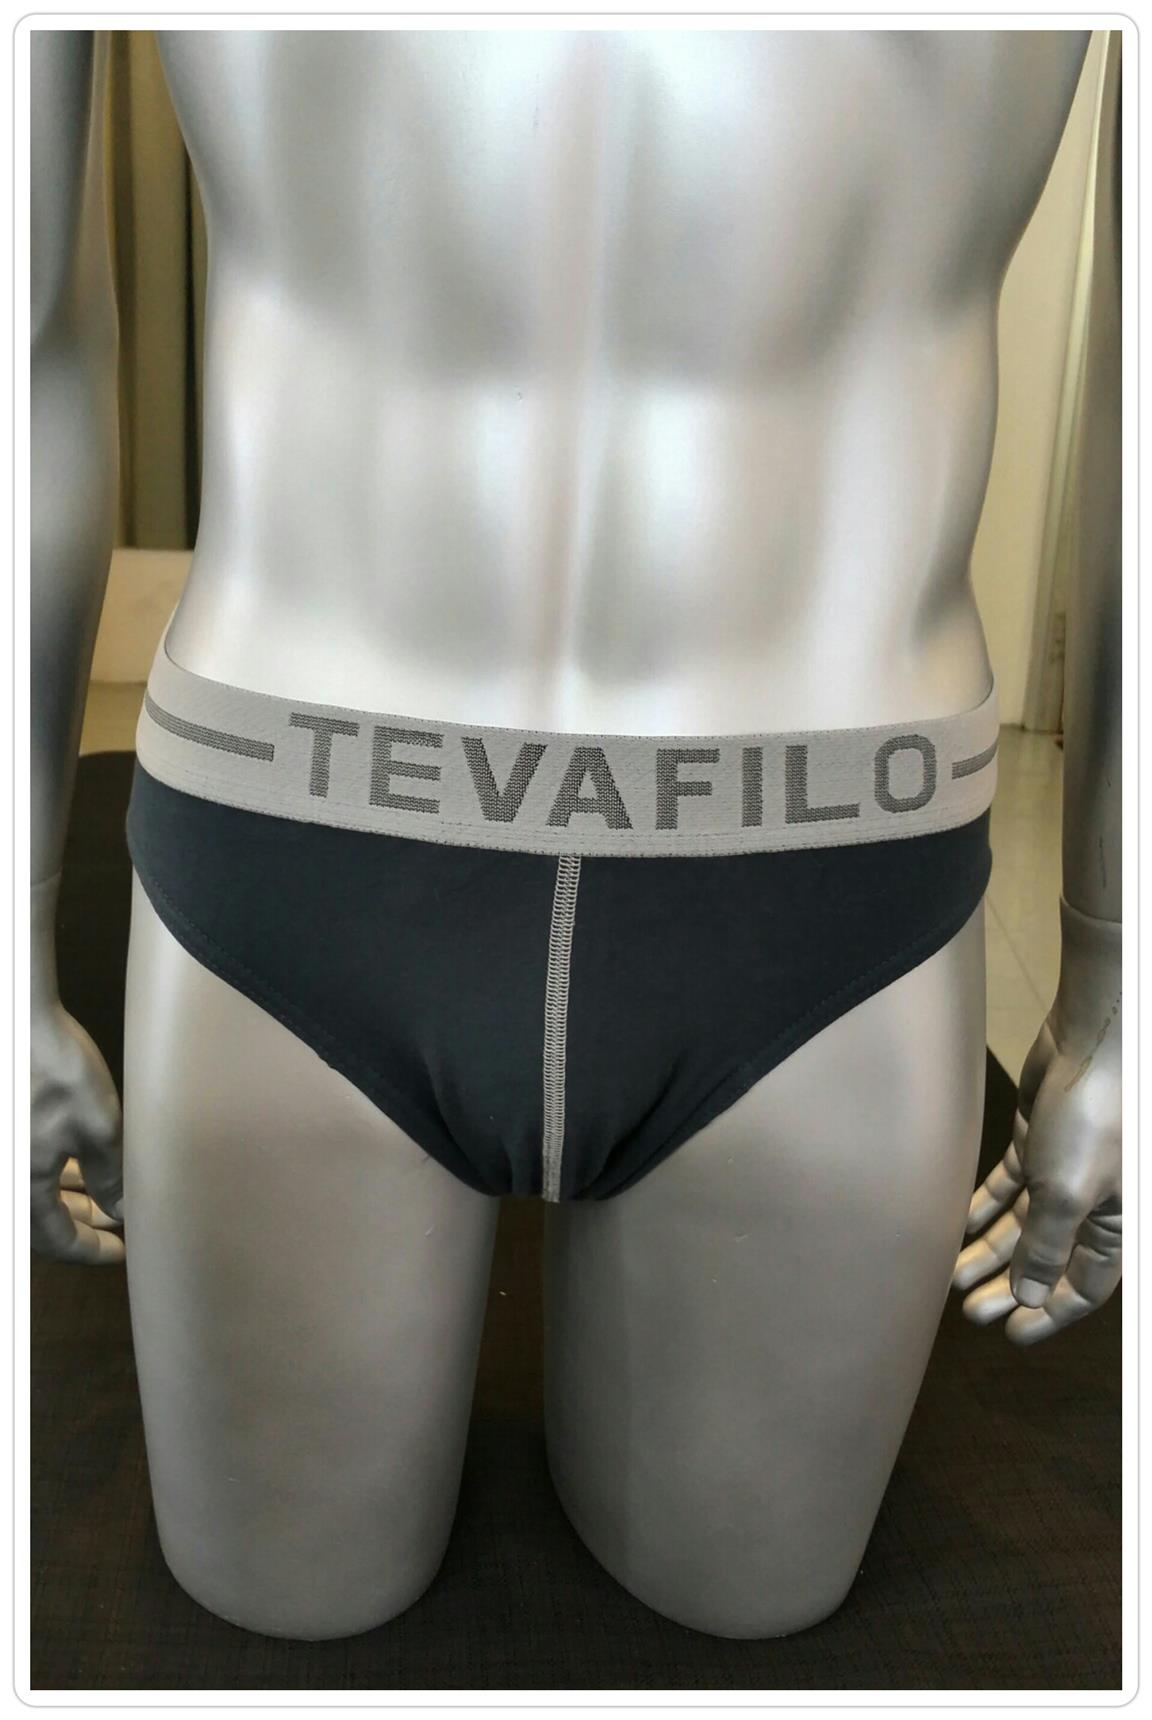 [TEVA FILO] Men's Brief Underwear - TF304 (3 pcs pack briefs)